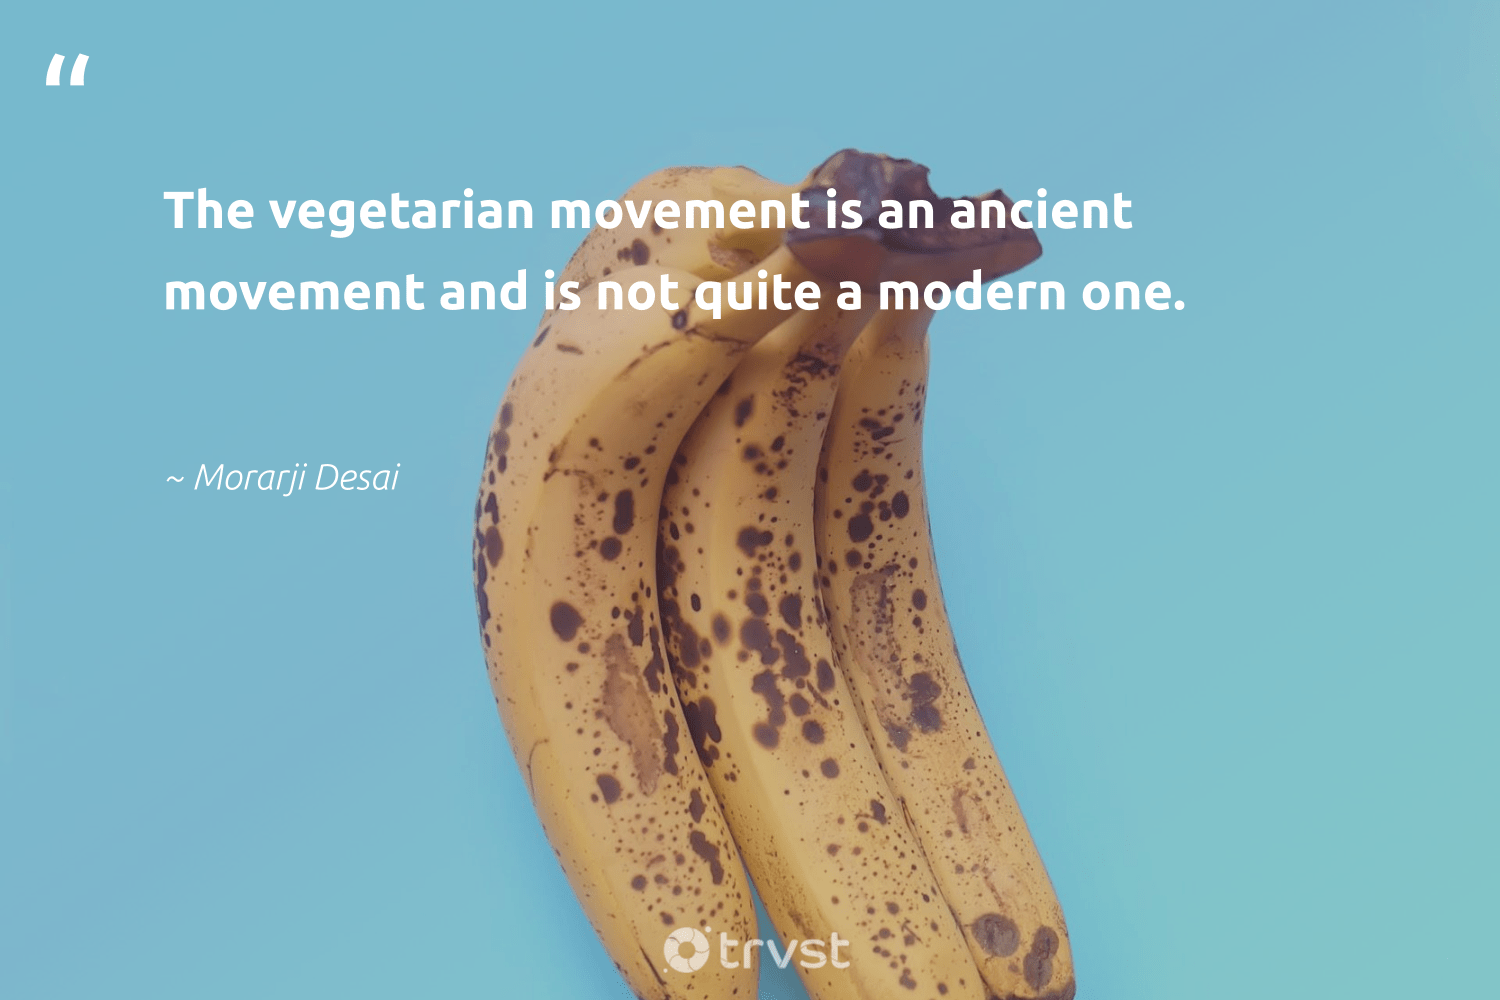 """""""The vegetarian movement is an ancient movement and is not quite a modern one.""""  - Morarji Desai #trvst #quotes #vegan #vegetarian #plantbased #green #sustainable #collectiveaction #whatveganseat #gogreen #sustainability #planetearthfirst"""